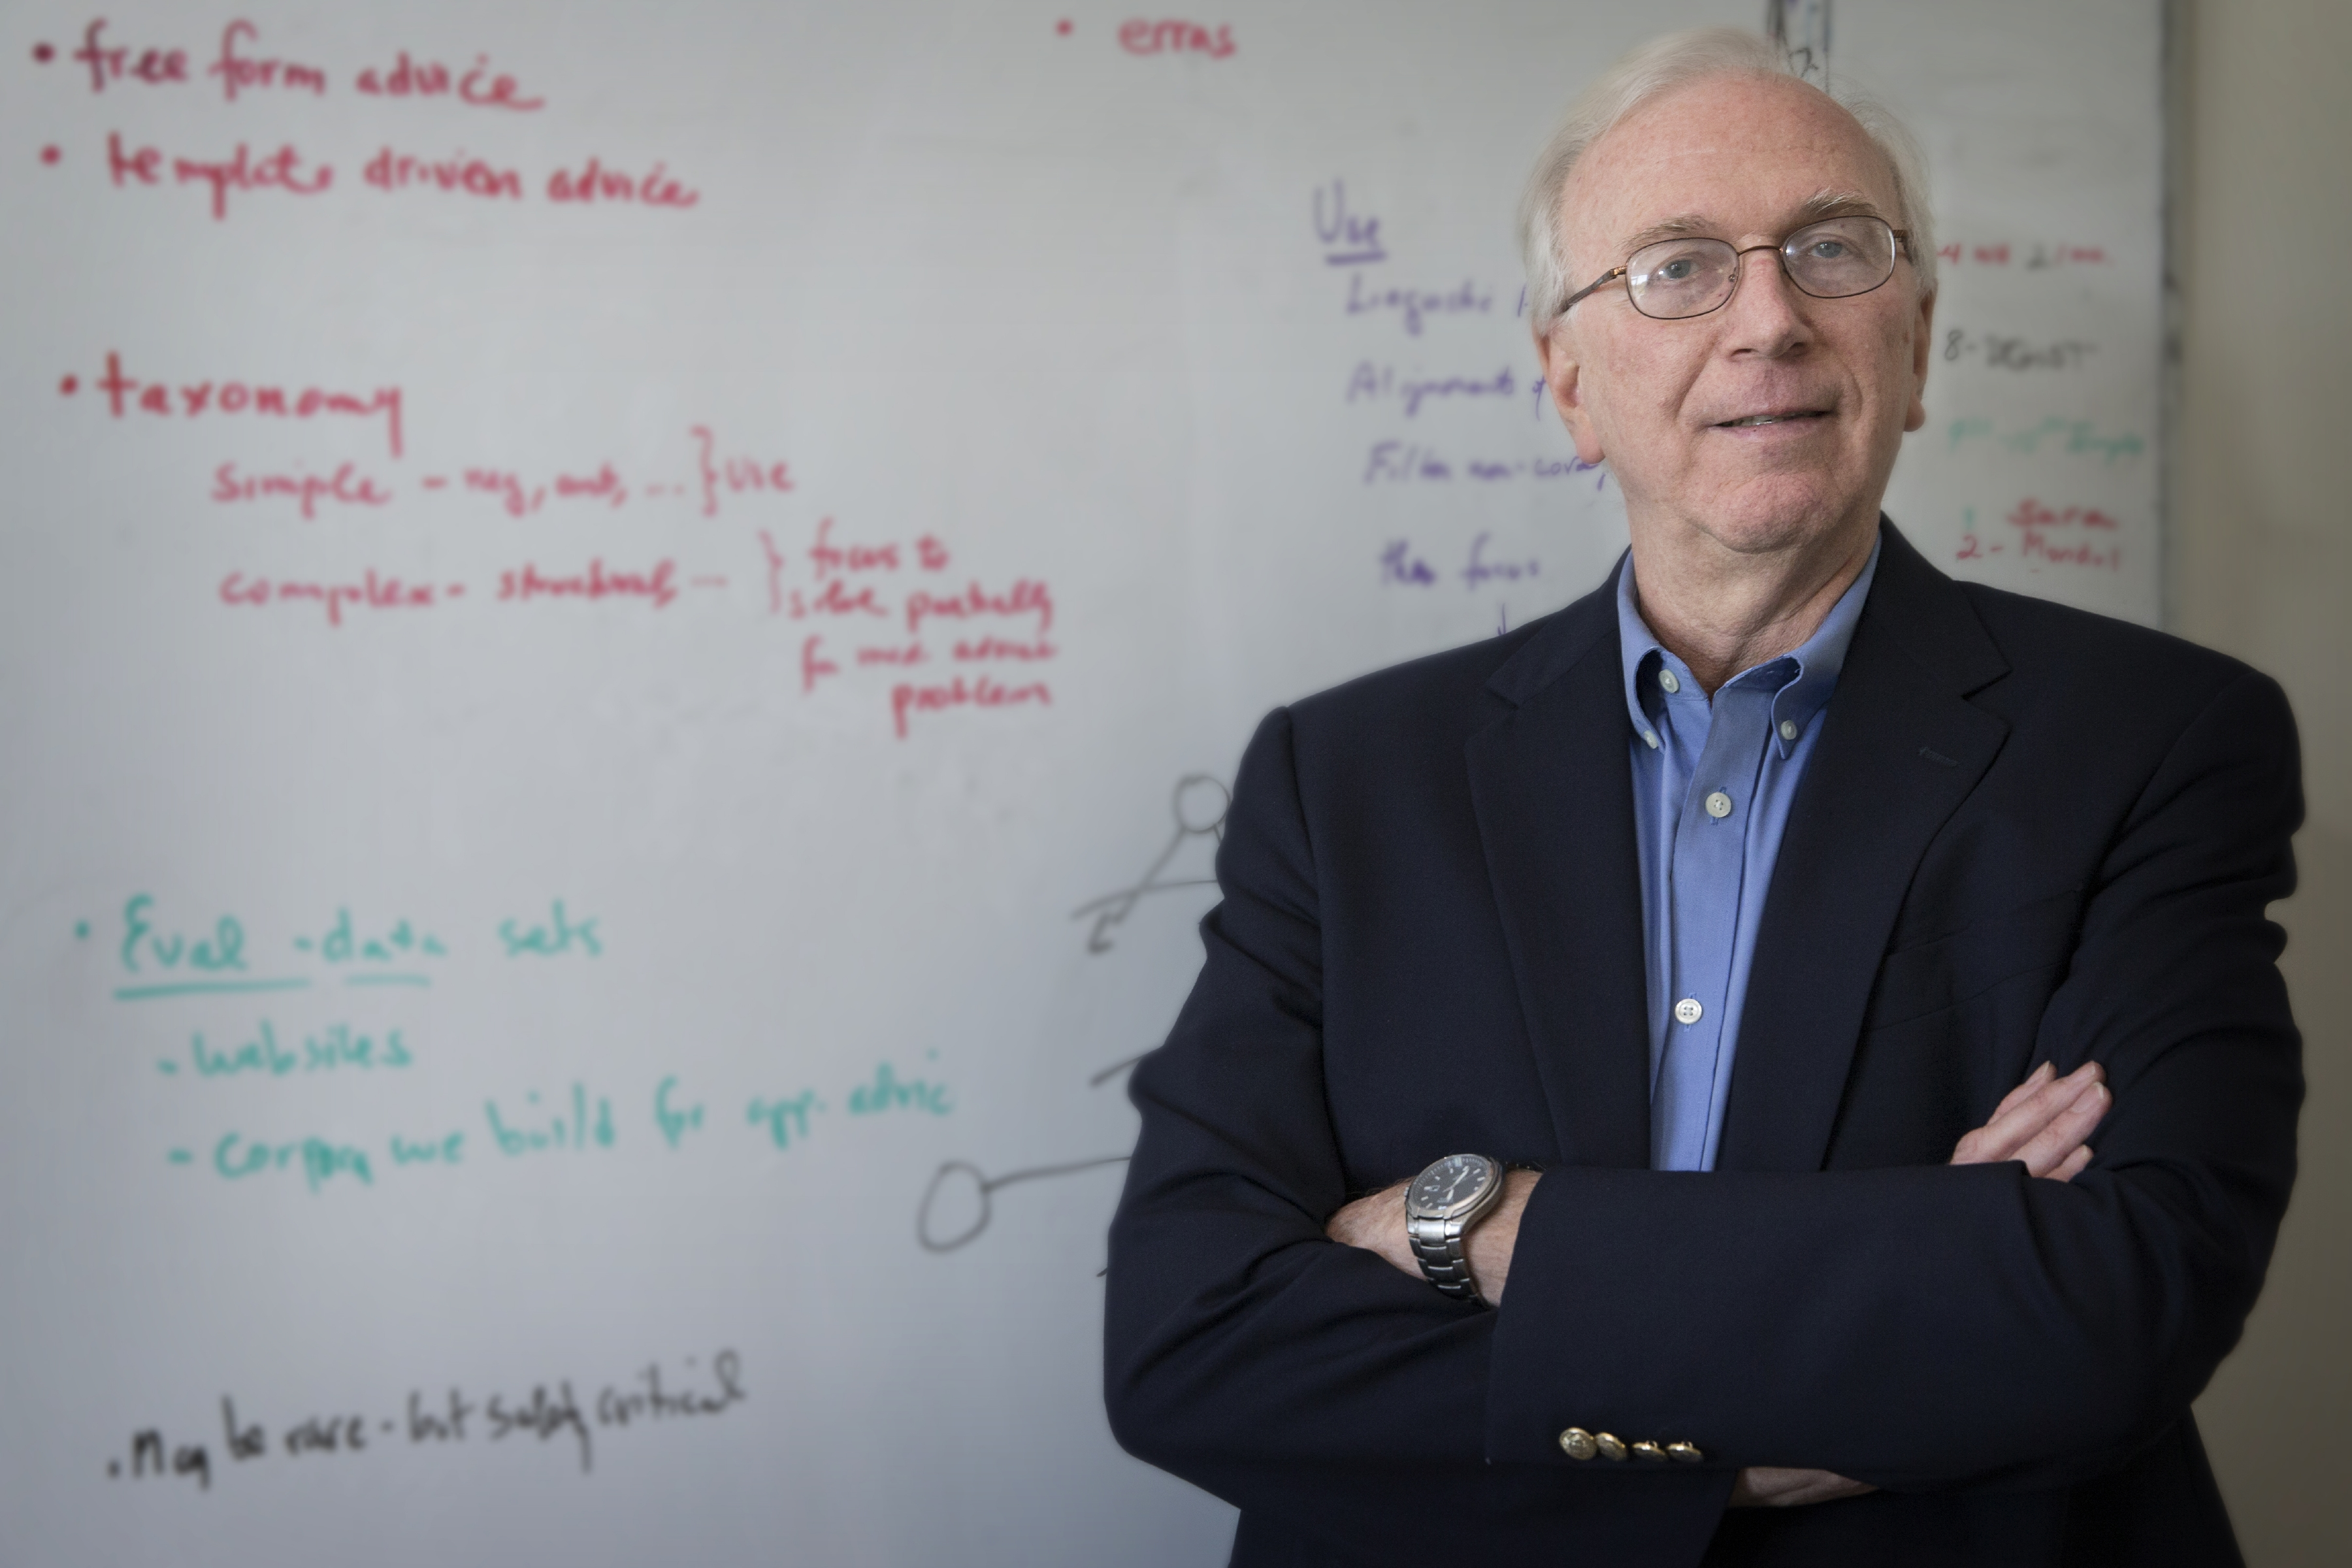 John Stankovic is the BP America Professor of Computer Science in the Engineering School. His research focuses on real-time computing, cyber-physical systems and wireless sensor networks.